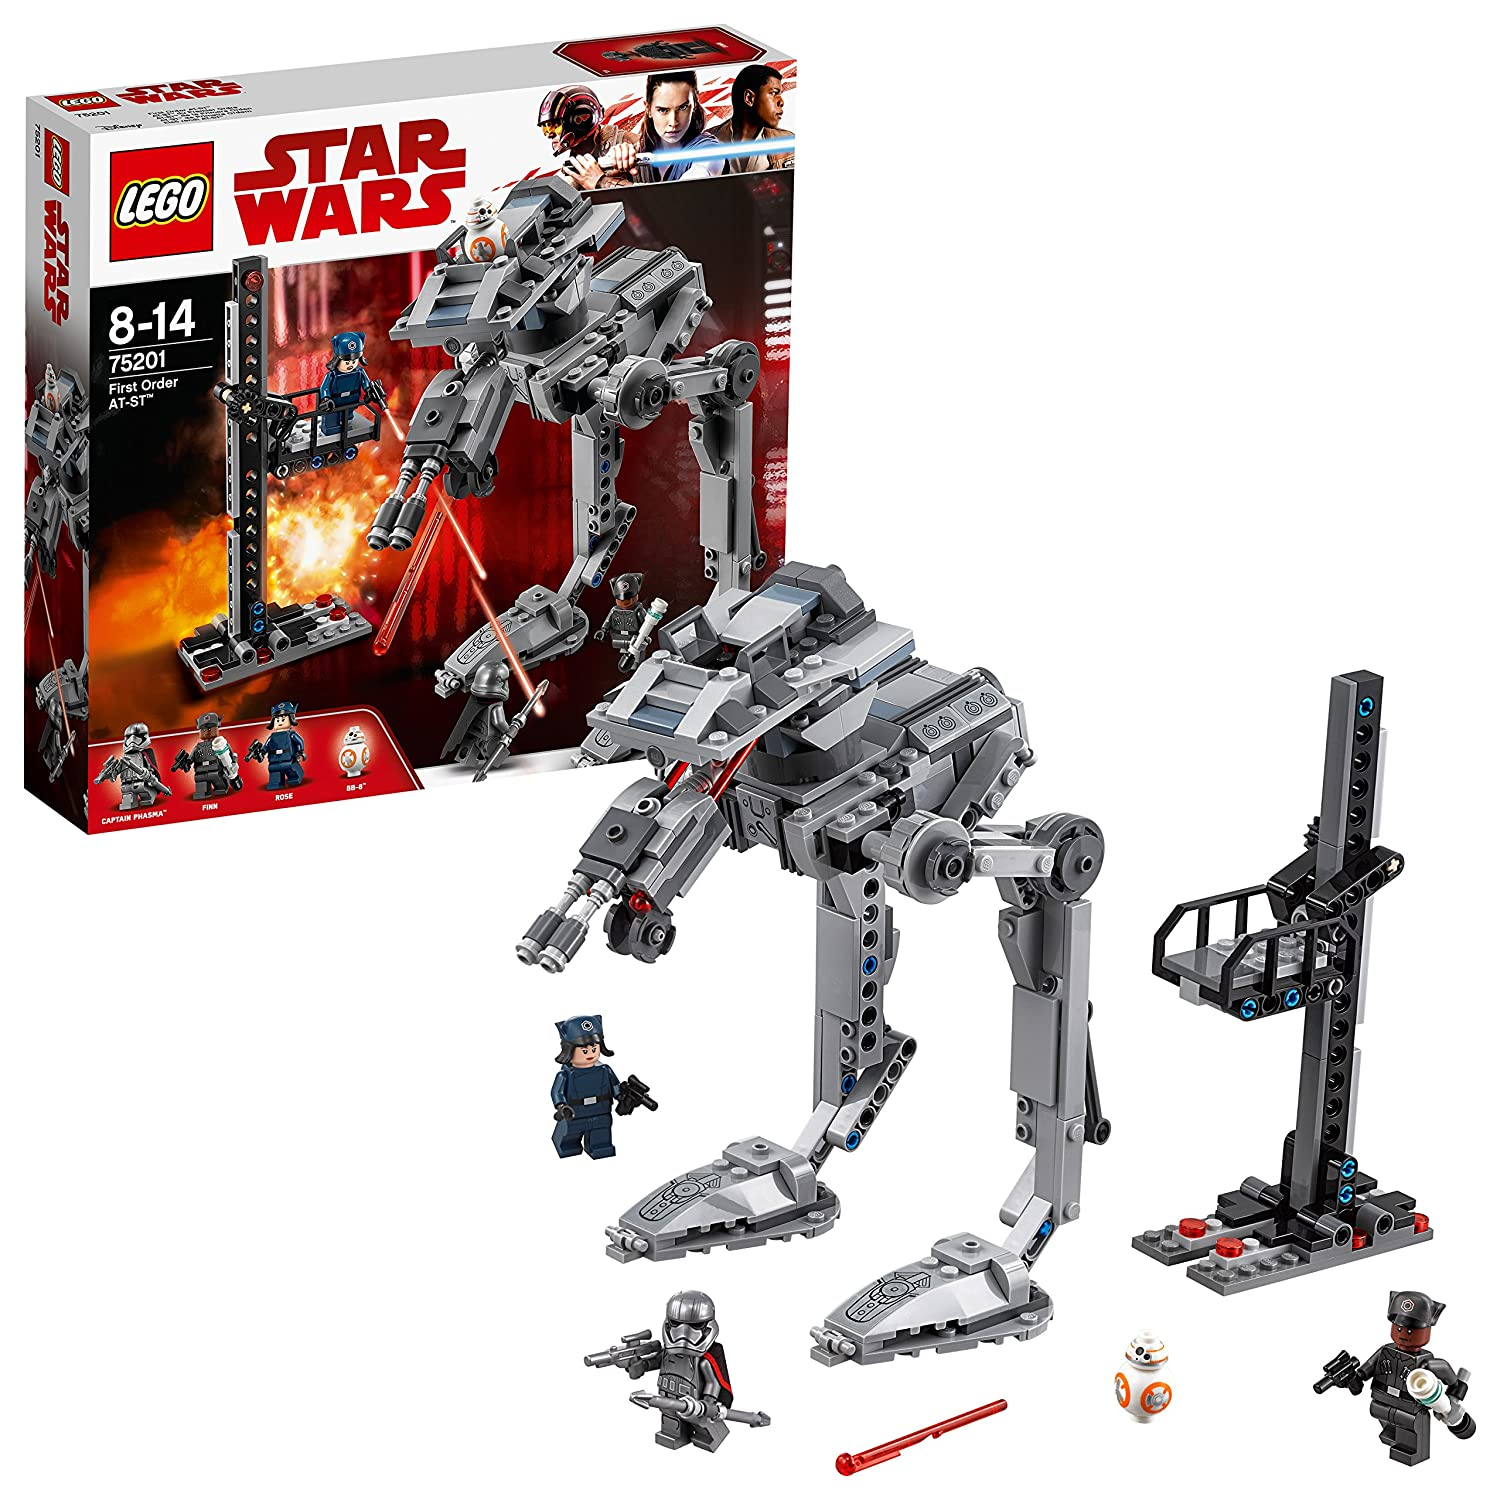 LEGO Star Wars - AT-ST du Premier Ordre - 75201 - Jeu de Construction